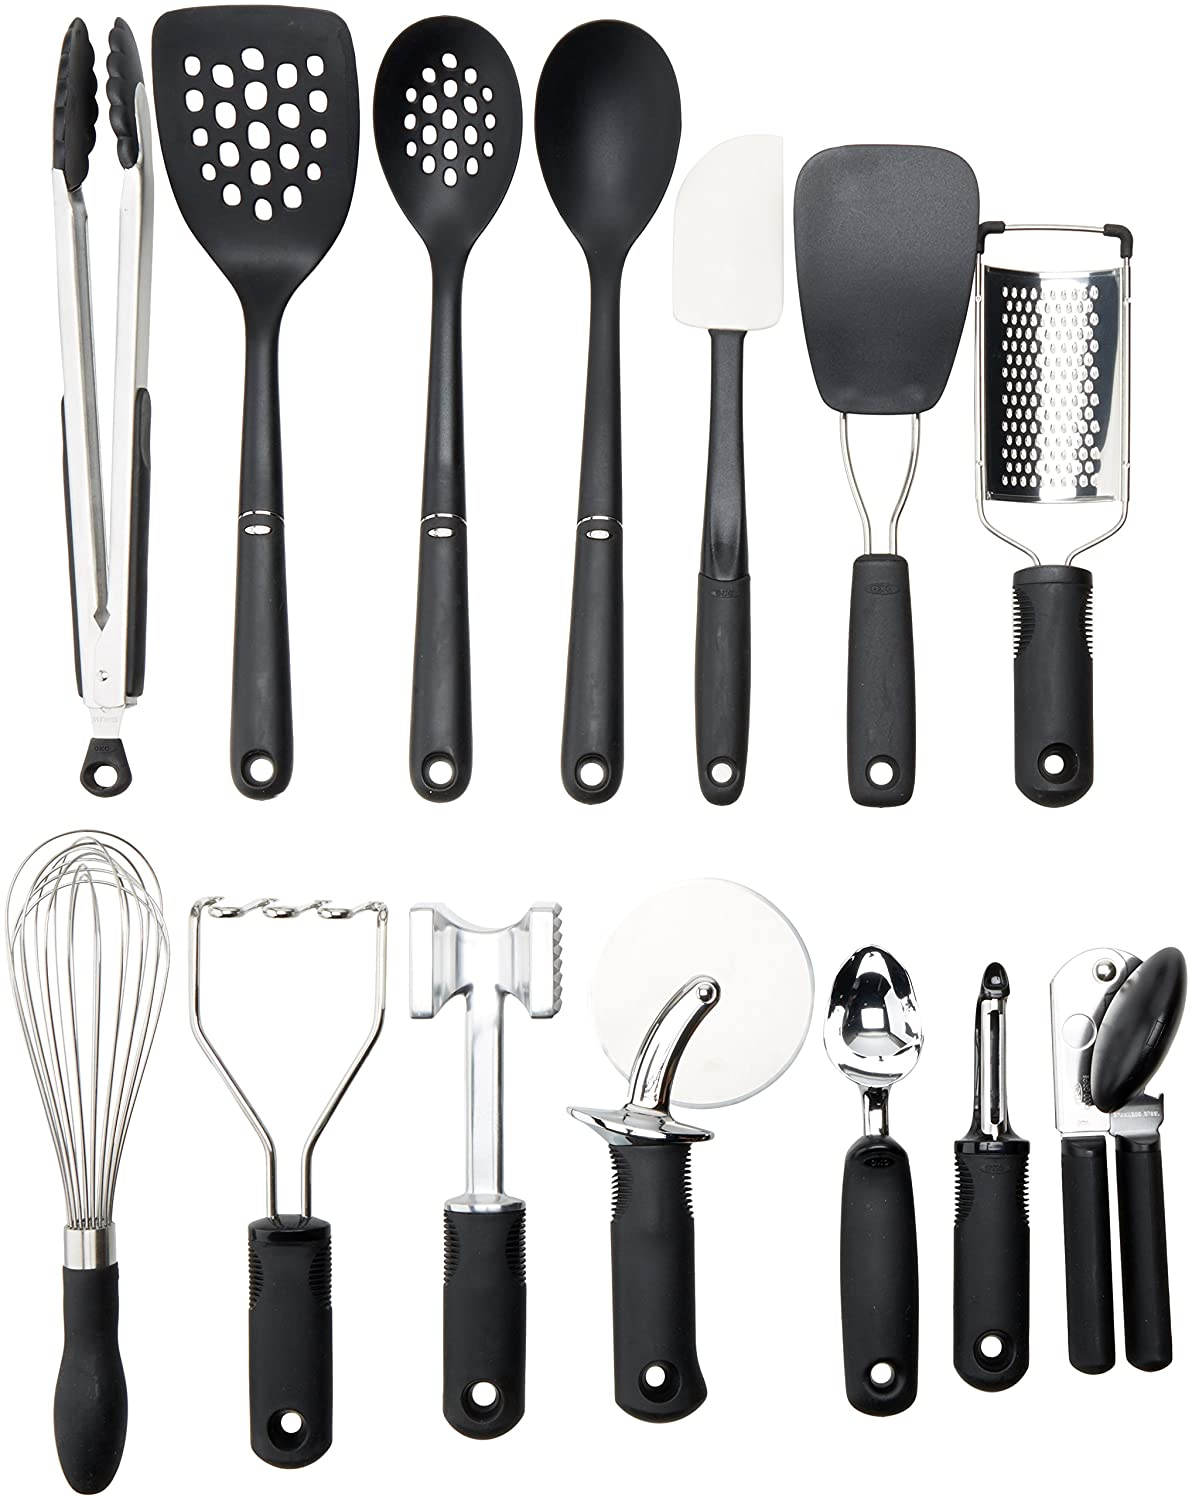 amazon com oxo 1069228 good grips 15 piece everyday kitchen tool rh amazon com OXO Hand Tools oxo 10 piece kitchen tool set